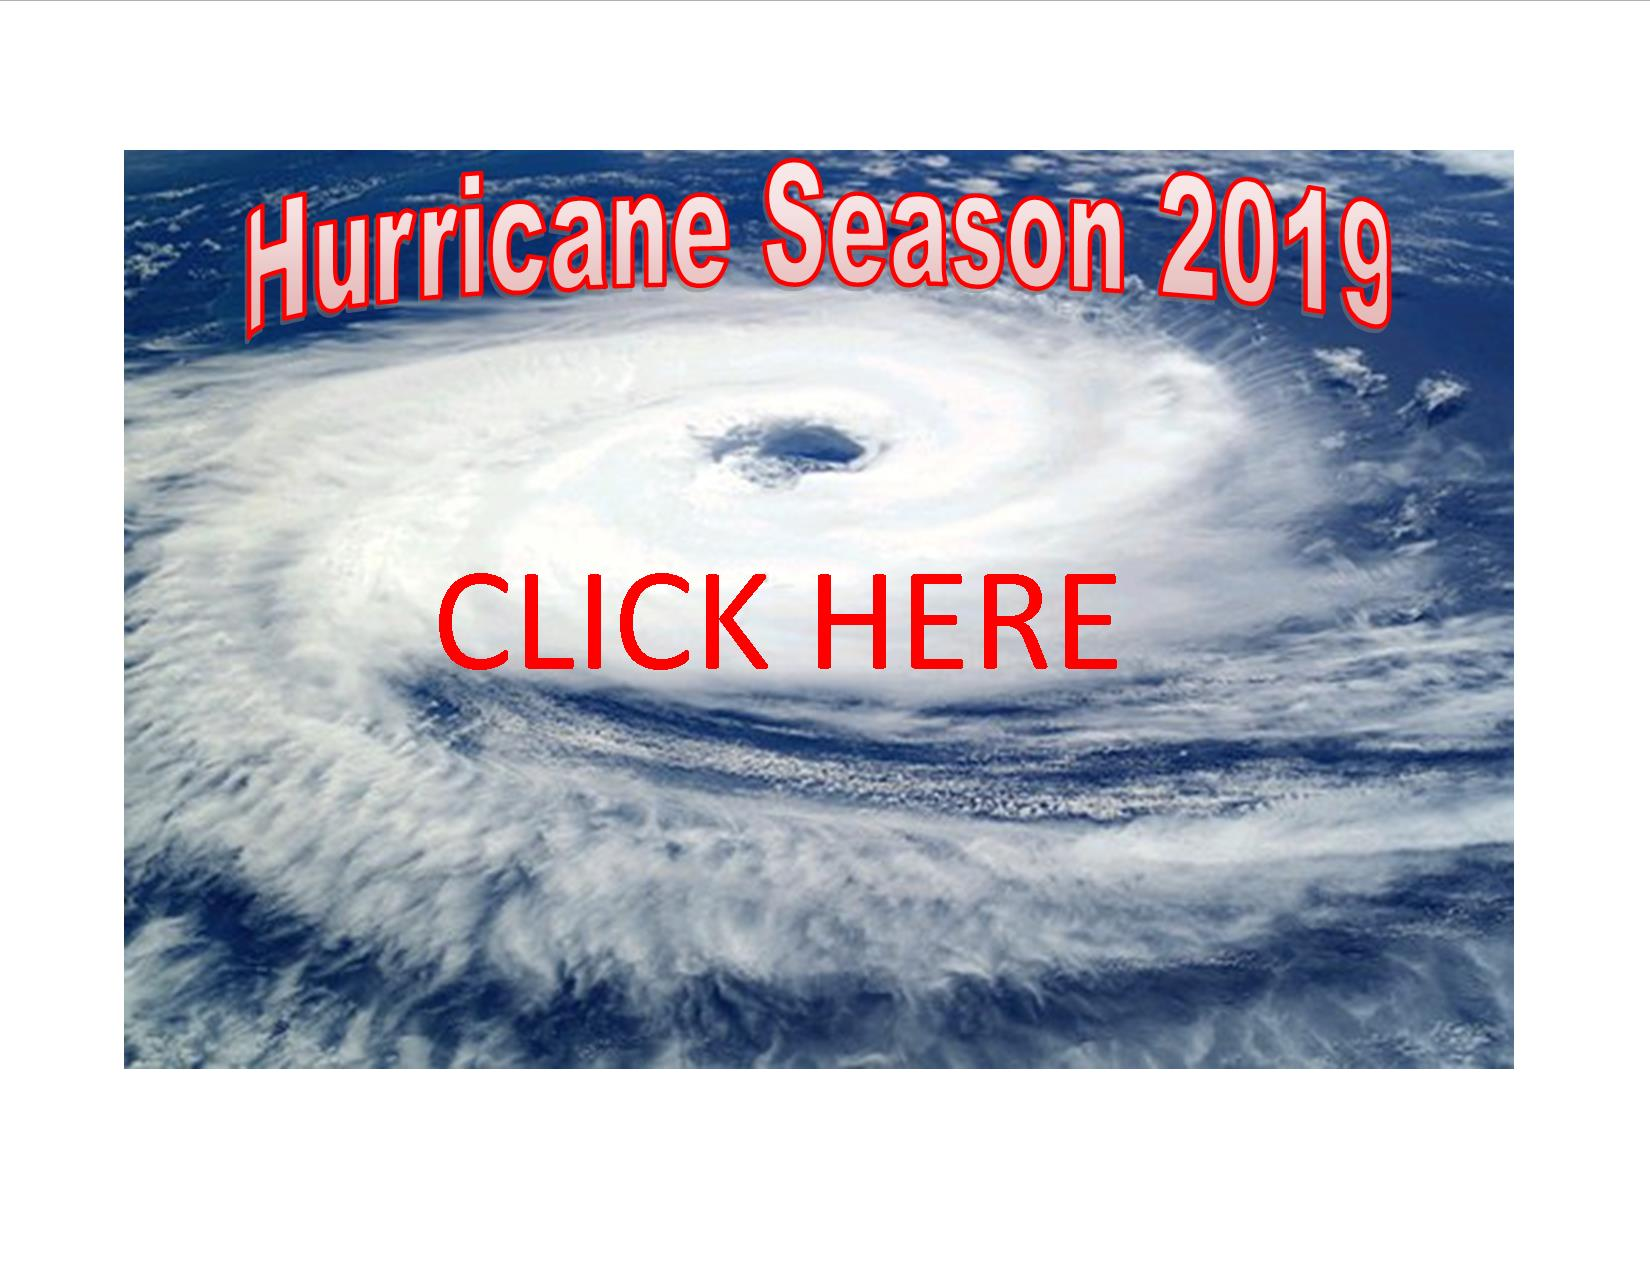 2019 Hurrican Season- Small box